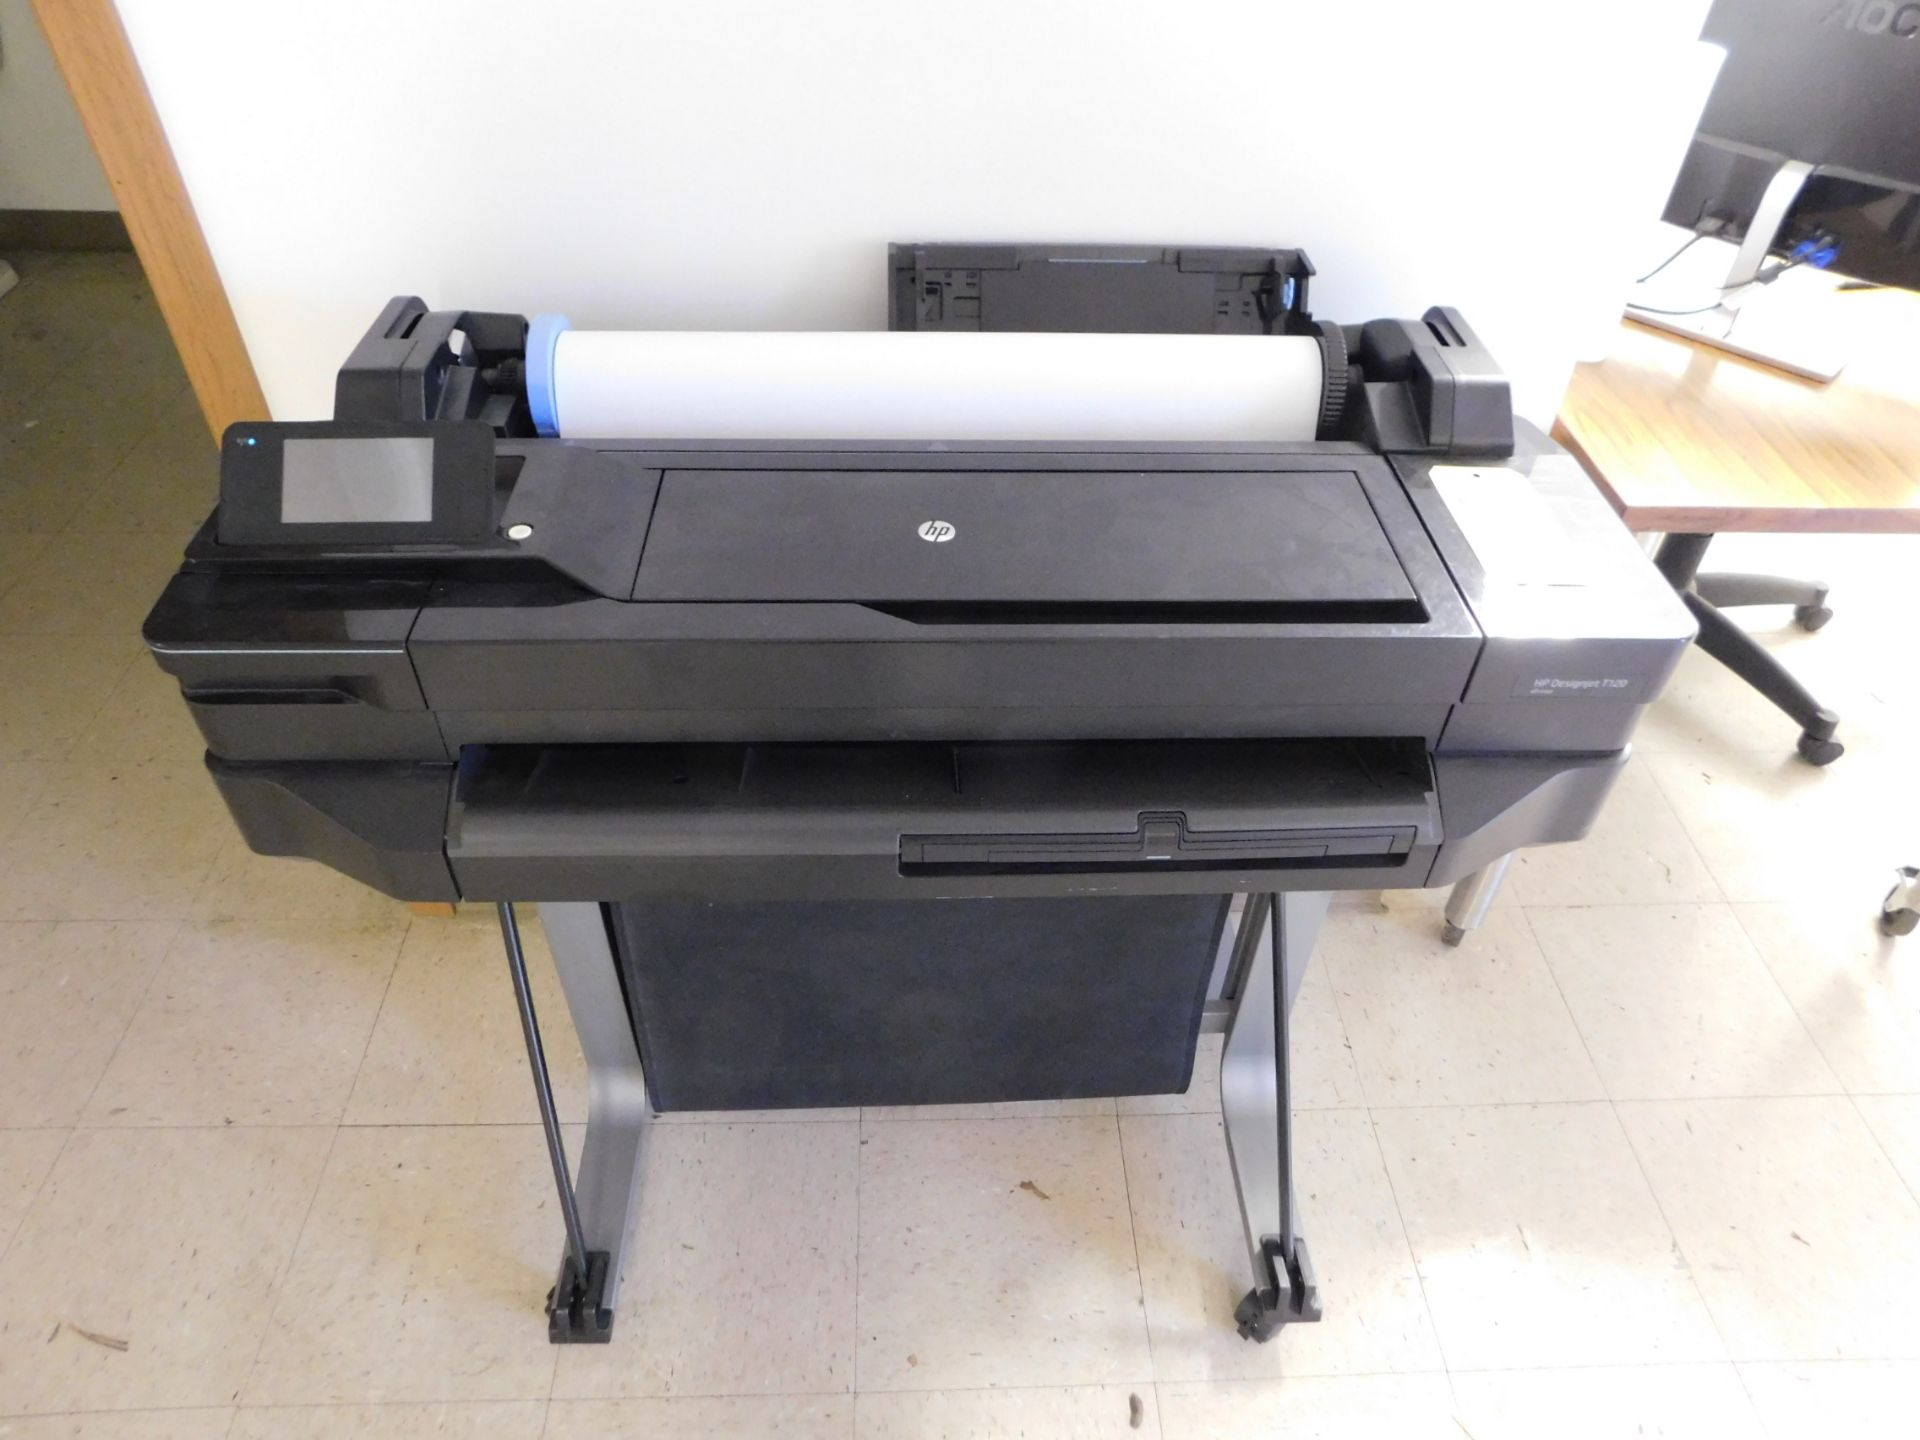 """Lot 367 - HP Designjet T120 24"""" Wide Format Printer, Lot Location 3204 Olympia Dr. A, Lafayette, IN 47909"""